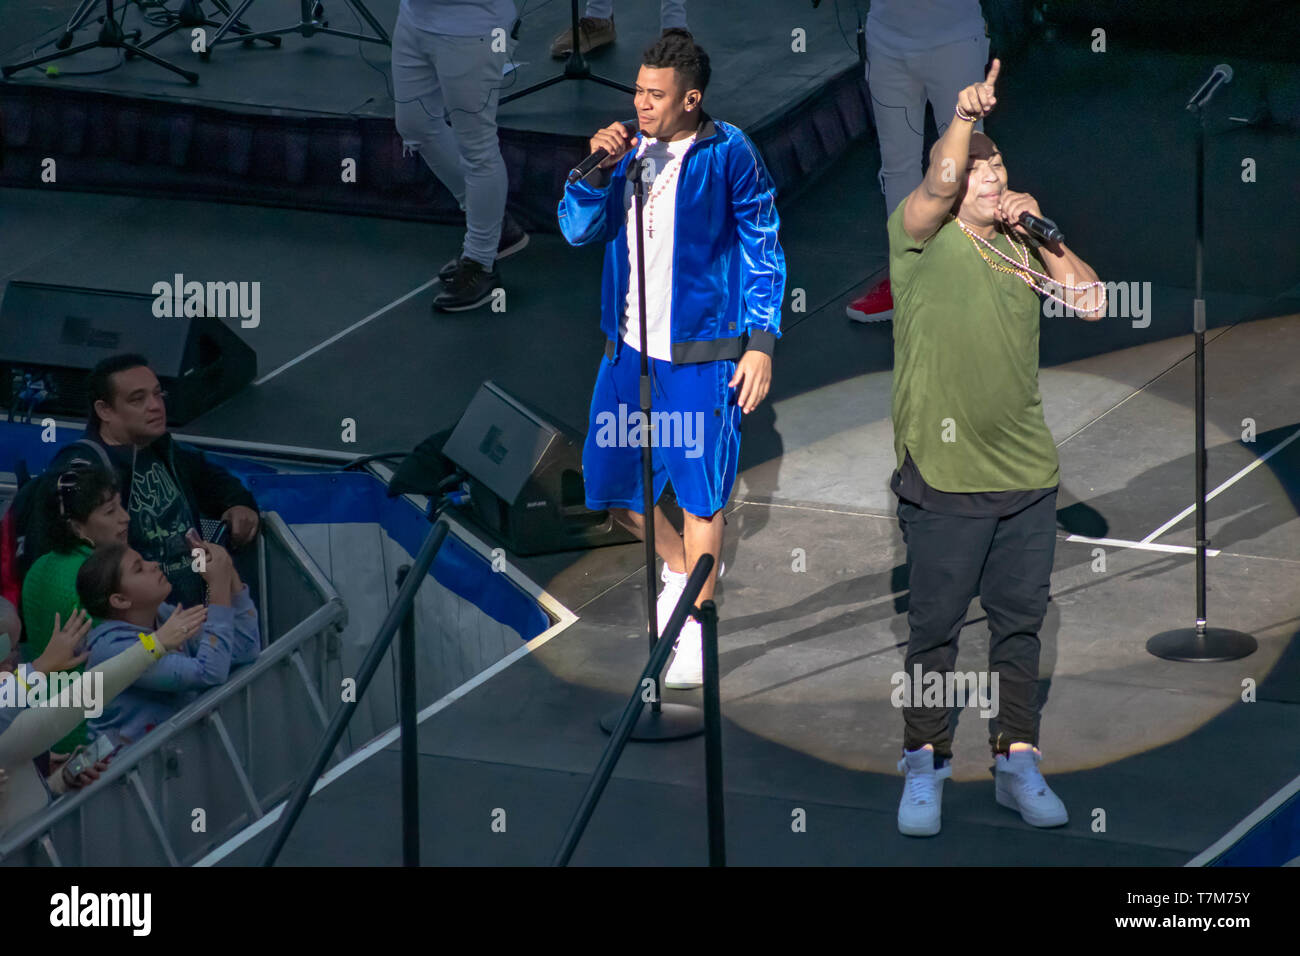 Orlando, Florida. March 17, 2019. Randy Malcom and Alexander Delgado by Gente de Zona singing urban music at Seaworld  in International Drive Area  (4 Stock Photo